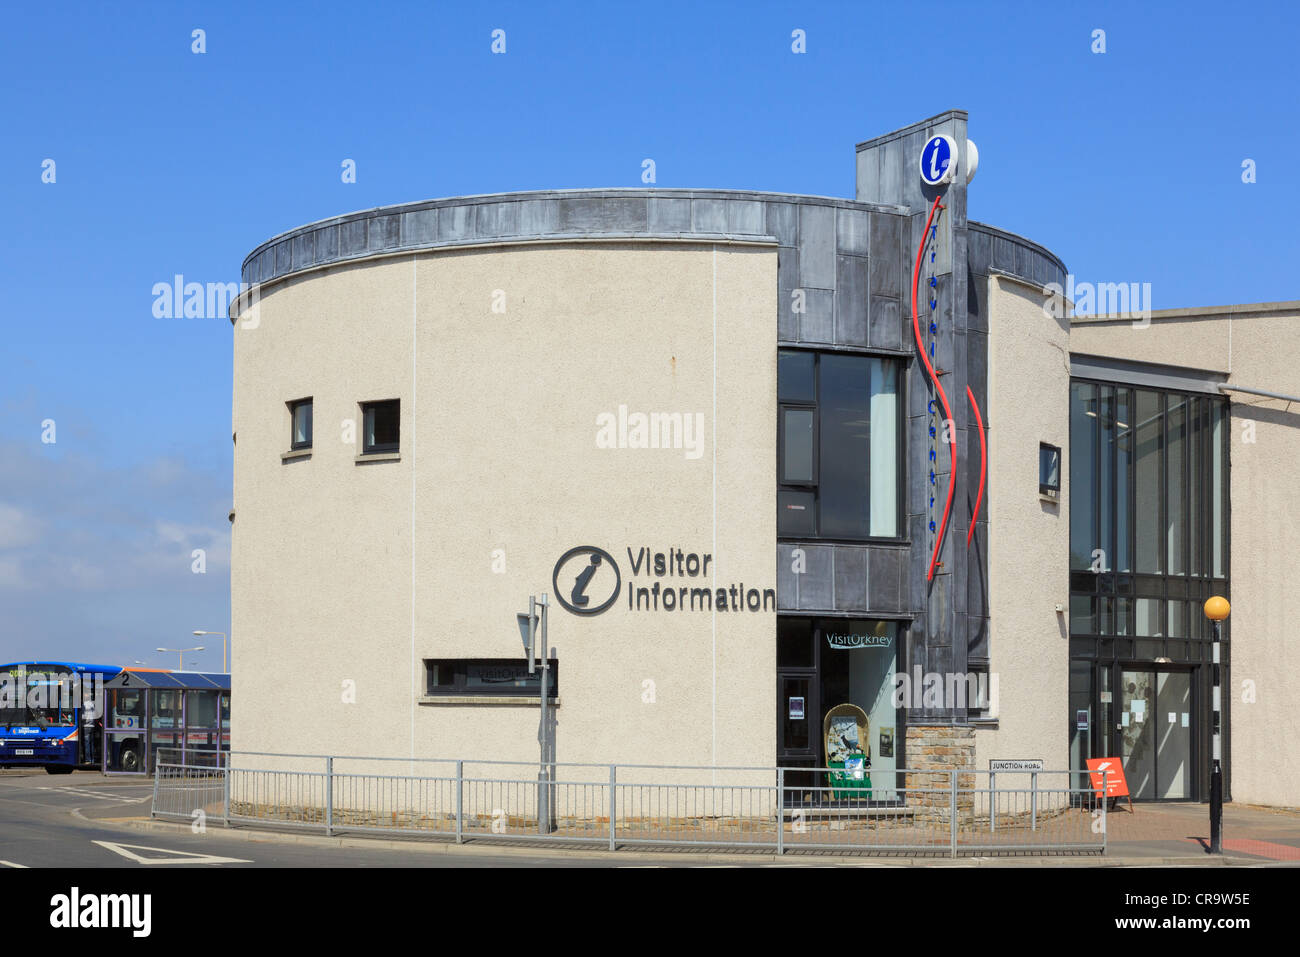 Modern Tourist Information Centre by the bus station in Kirkwall, Orkney Islands, Scotland, UK, Britain - Stock Image